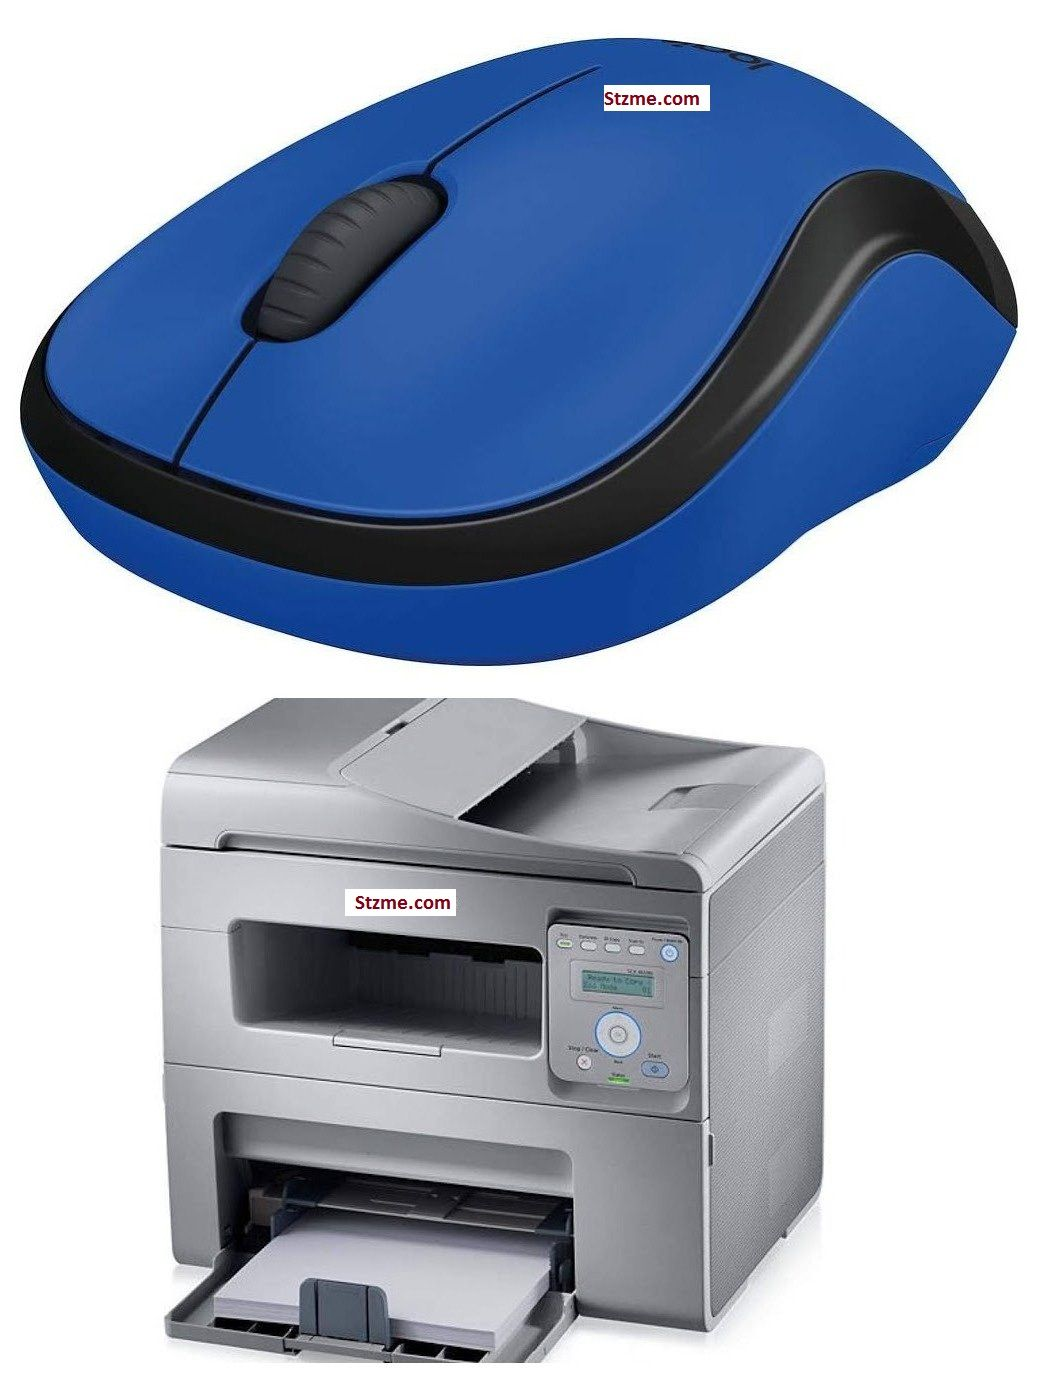 Smart Track Zone provides computermouse with printing